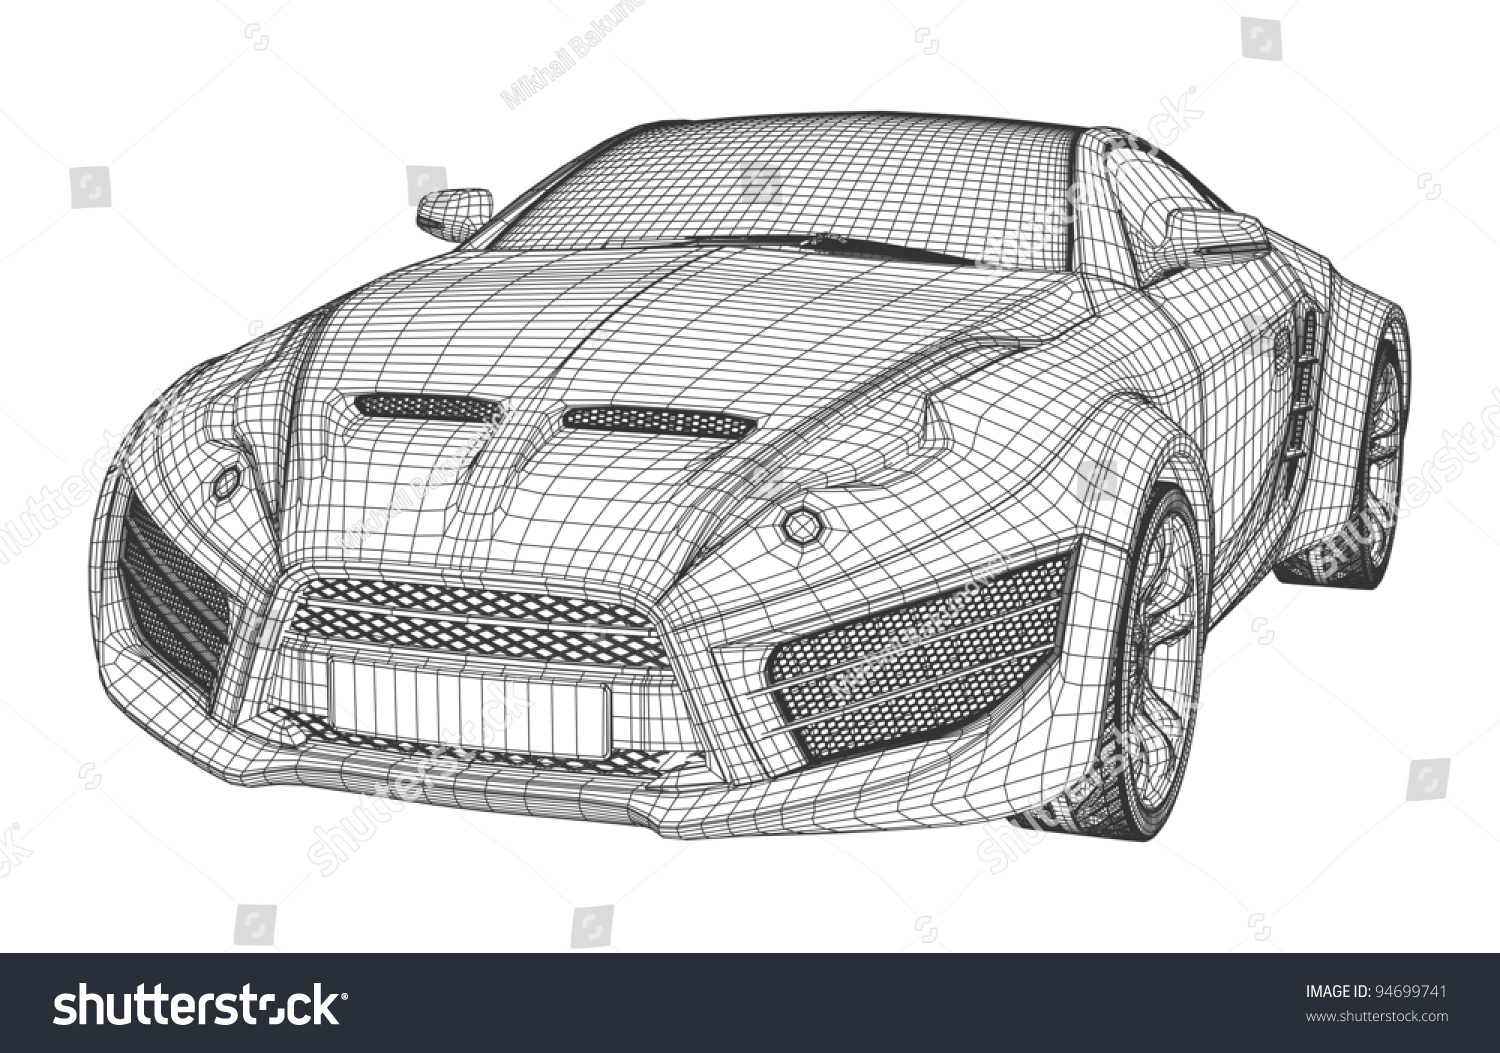 Sports Car Design Drawings